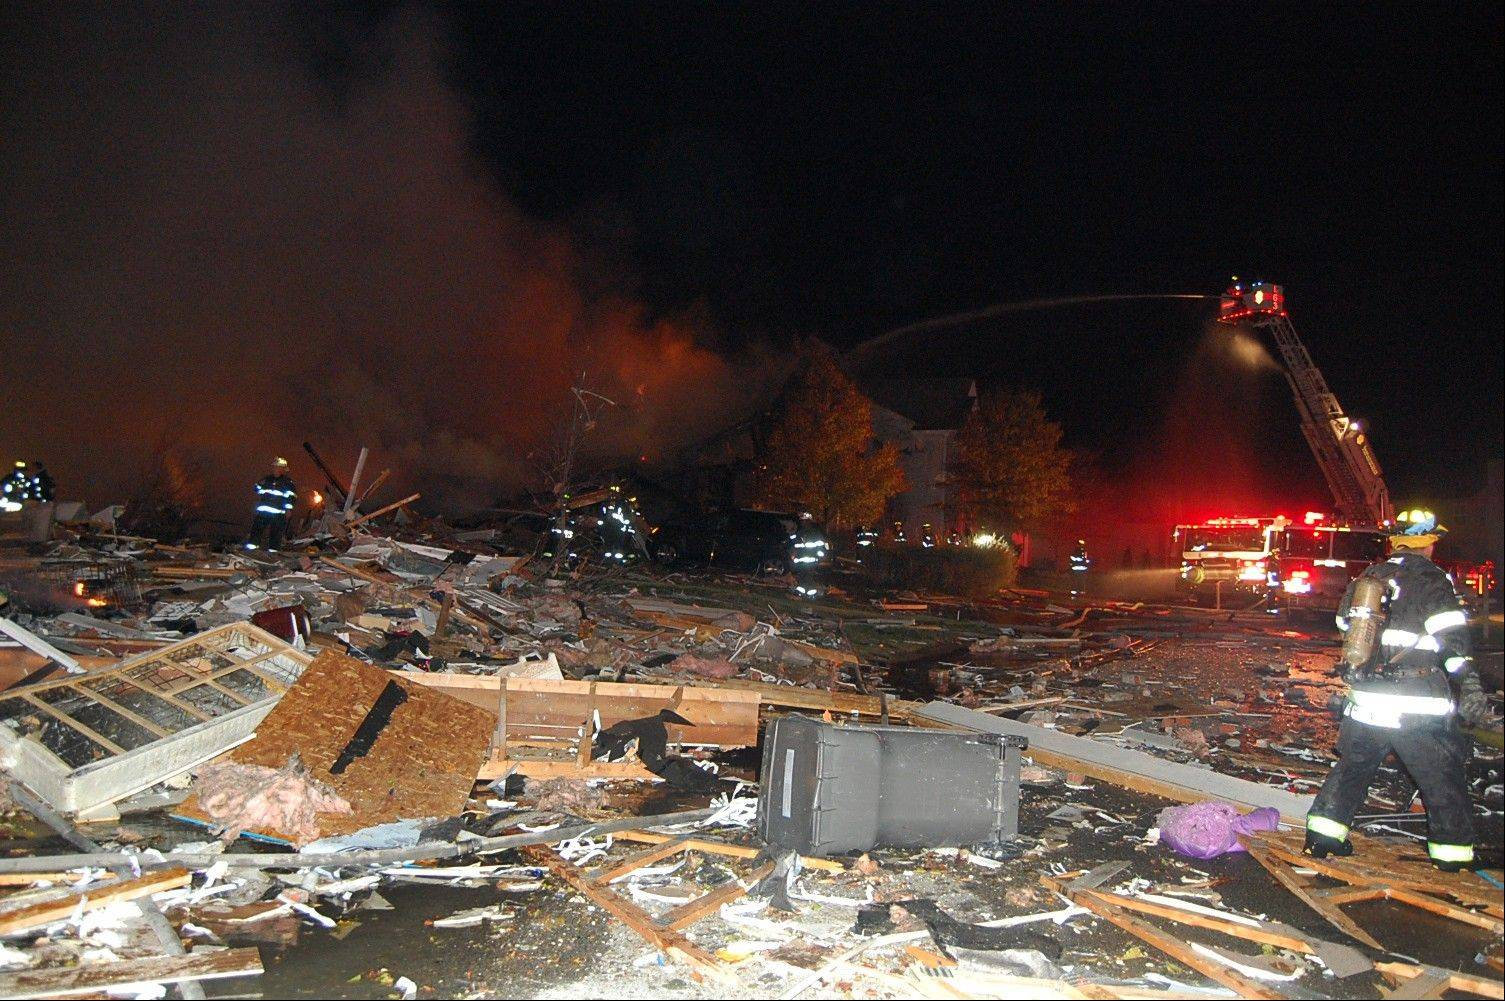 In this photo provided by the Indianapolis Fire Department, firefighters work the scene where an explosion and fire has killed two people and damaged more than a dozen homes late Saturday and early Sunday, Nov. 11, 2012, in the Richmond Hill subdivision in Indianapolis.